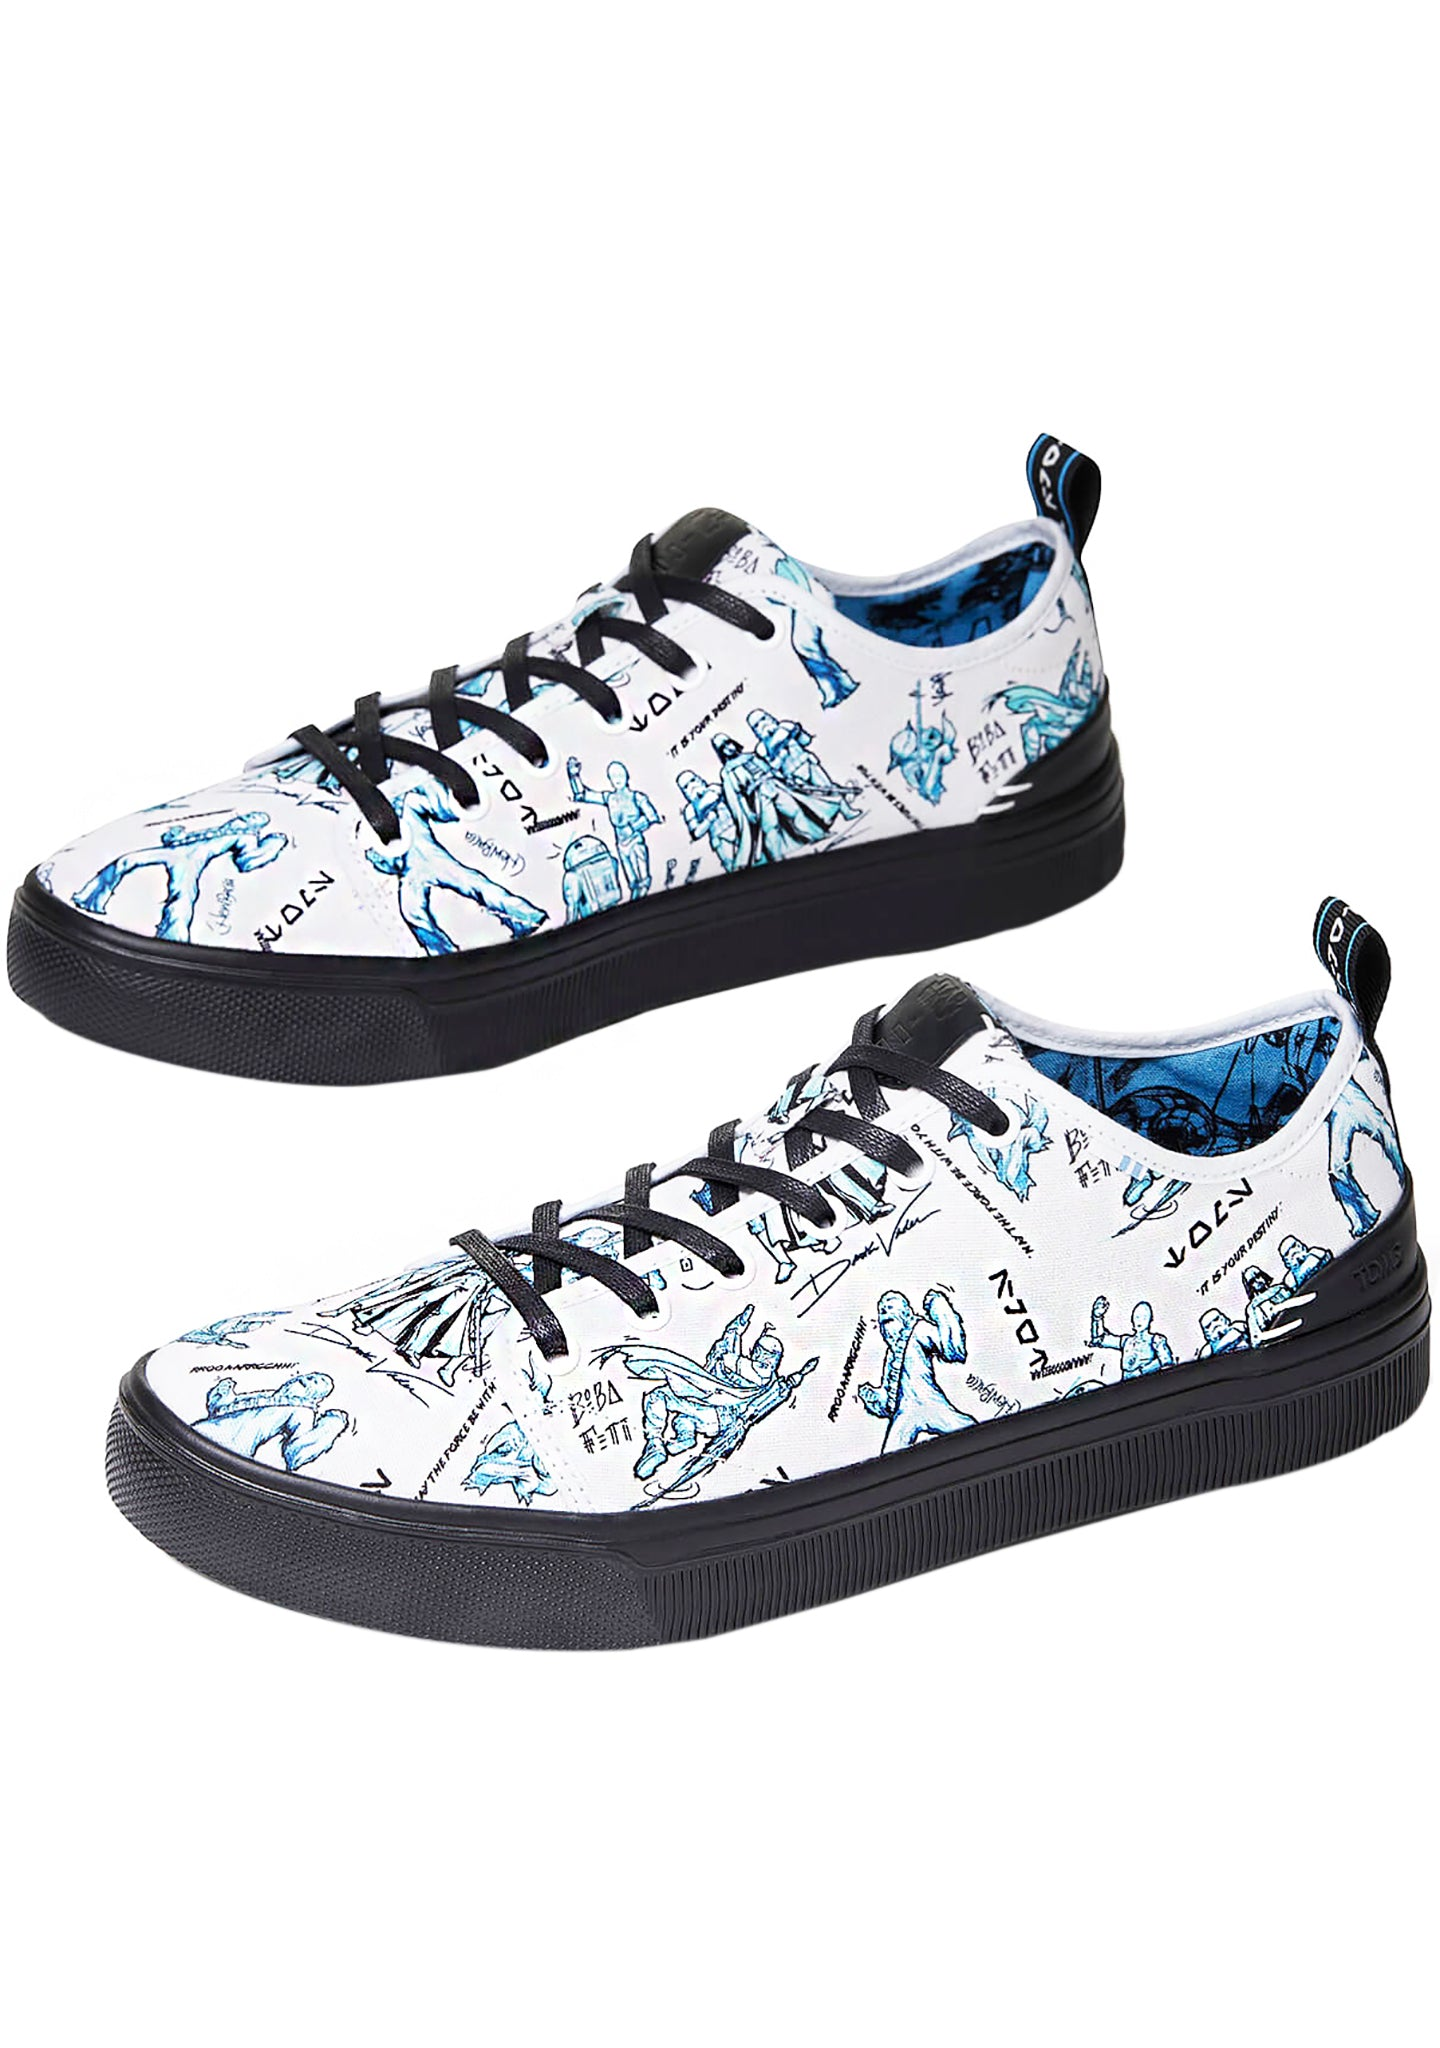 Star Wars Sneakers >> X Star Wars Character Sketch Print Mens Travel Lite Low Sneakers